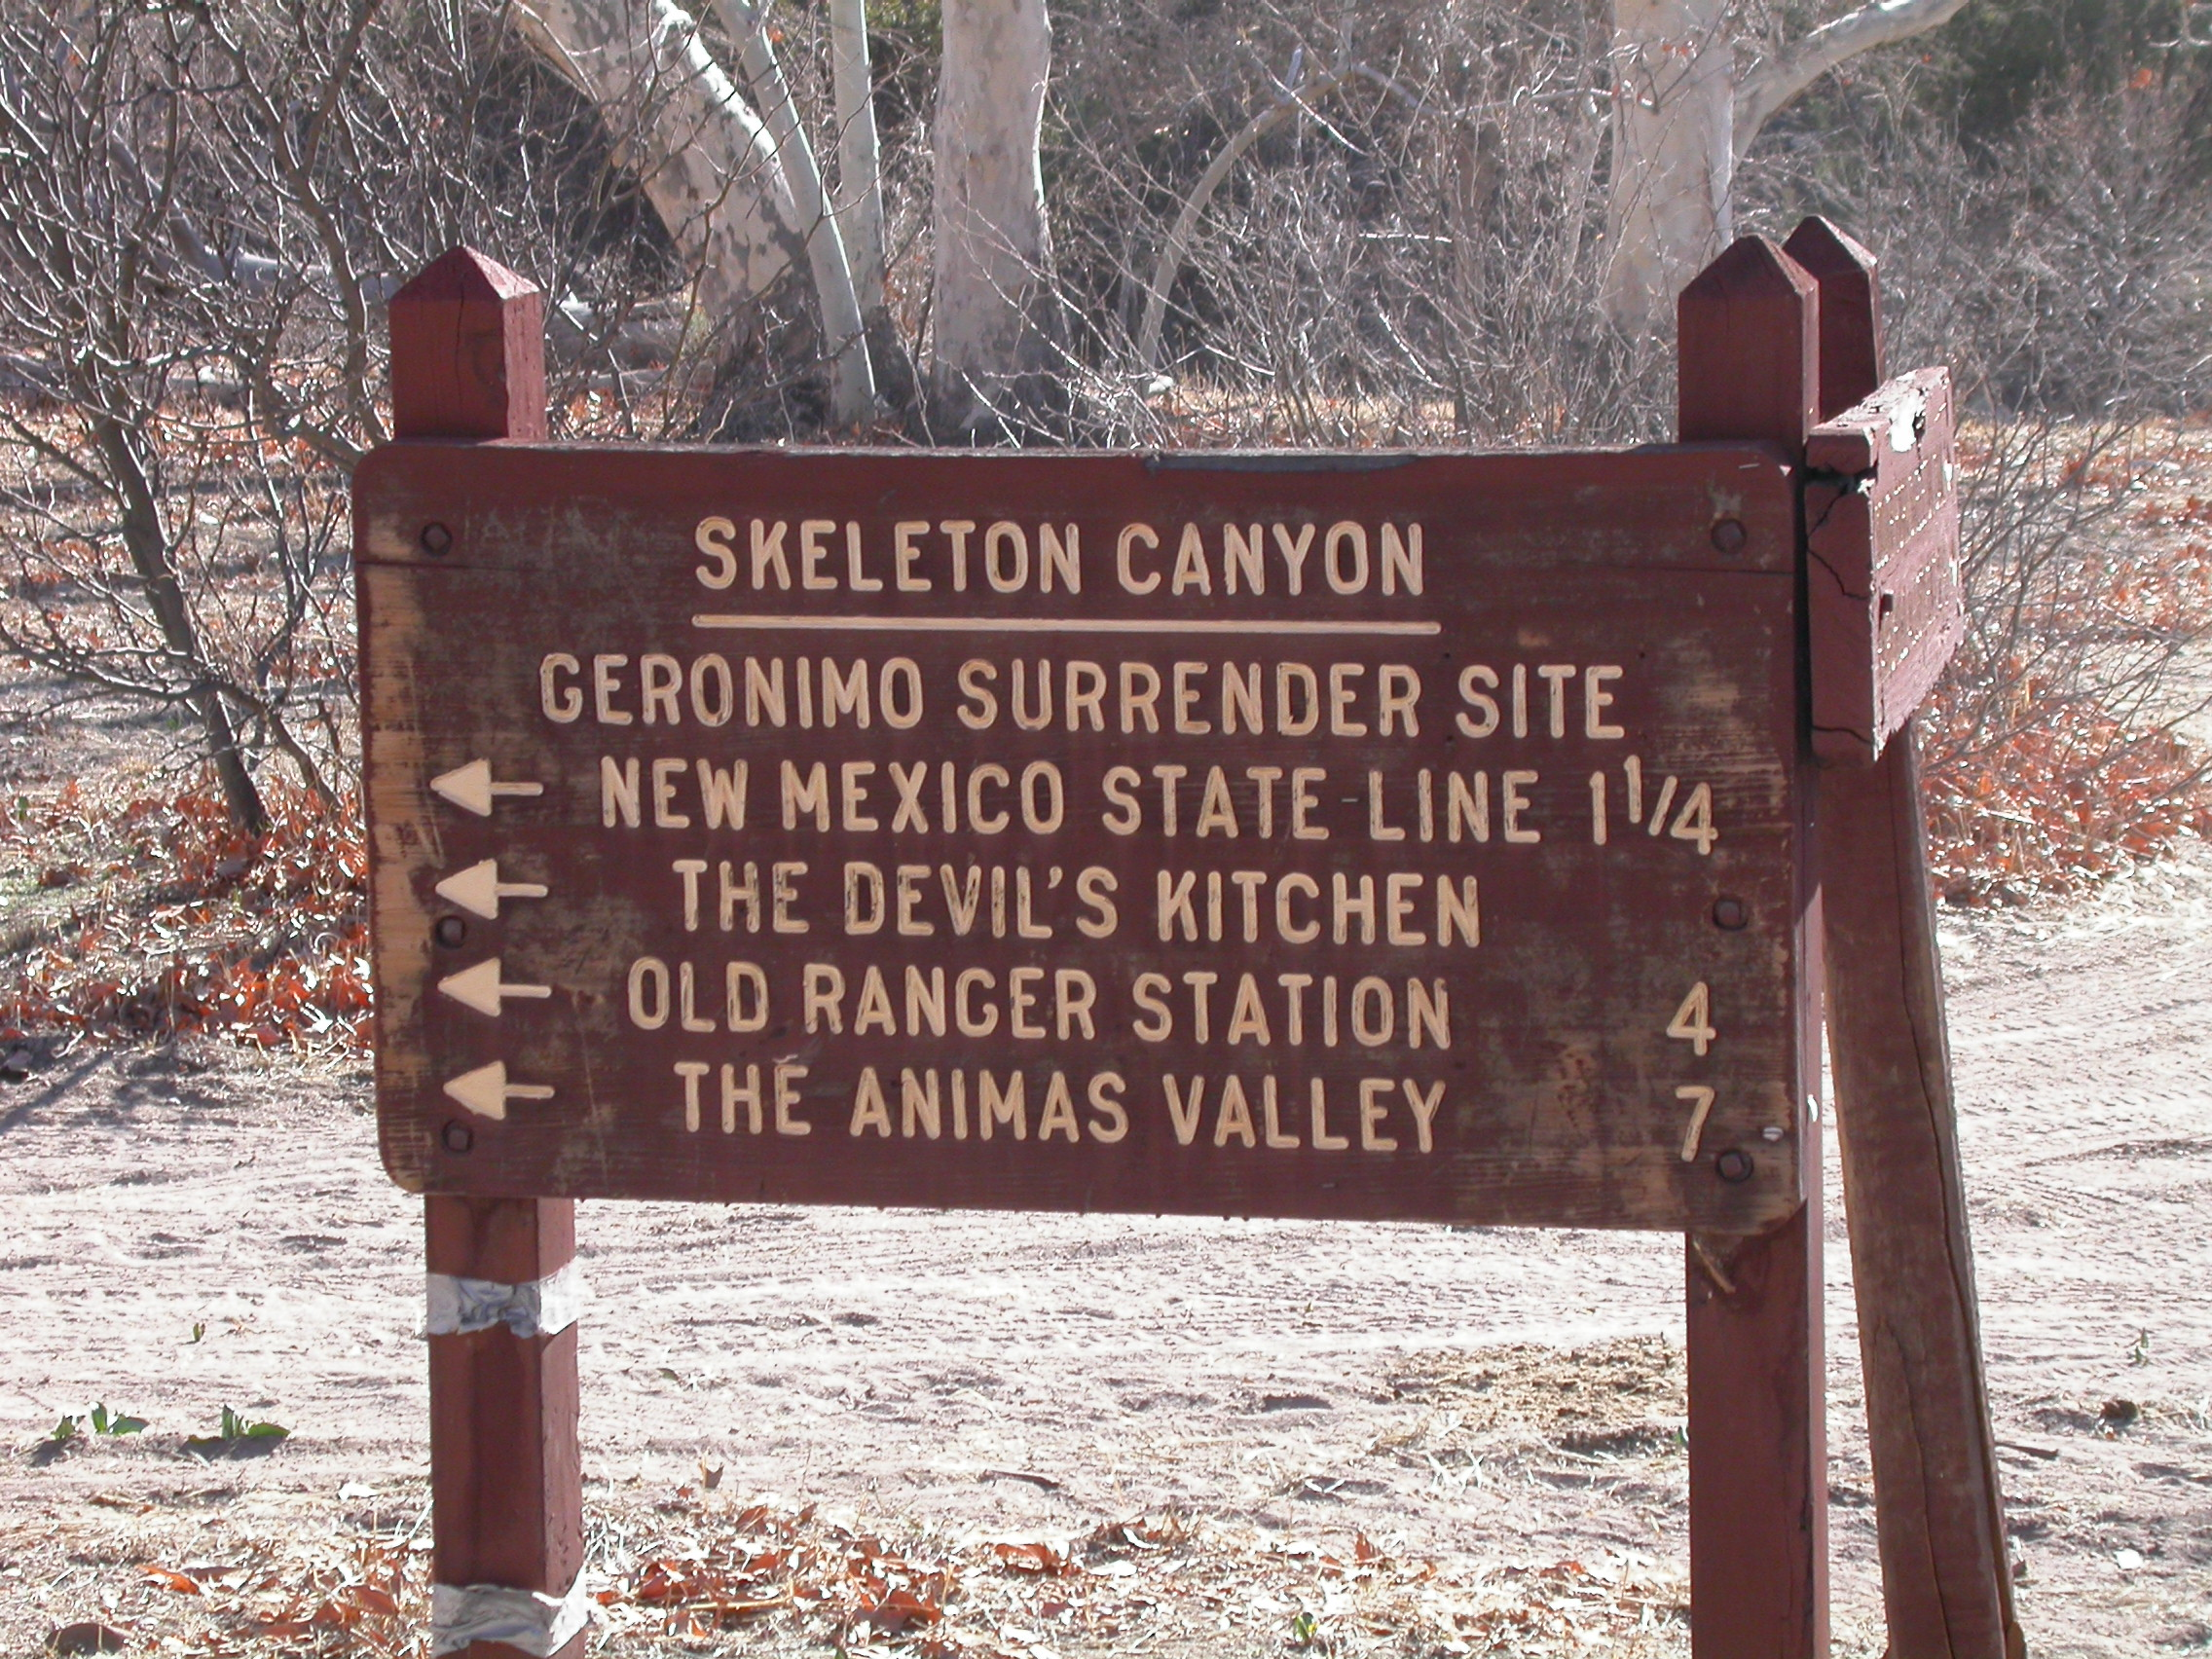 Geronimo Surrender Site In Skeleton Canyon - Where was geronimo on a us map